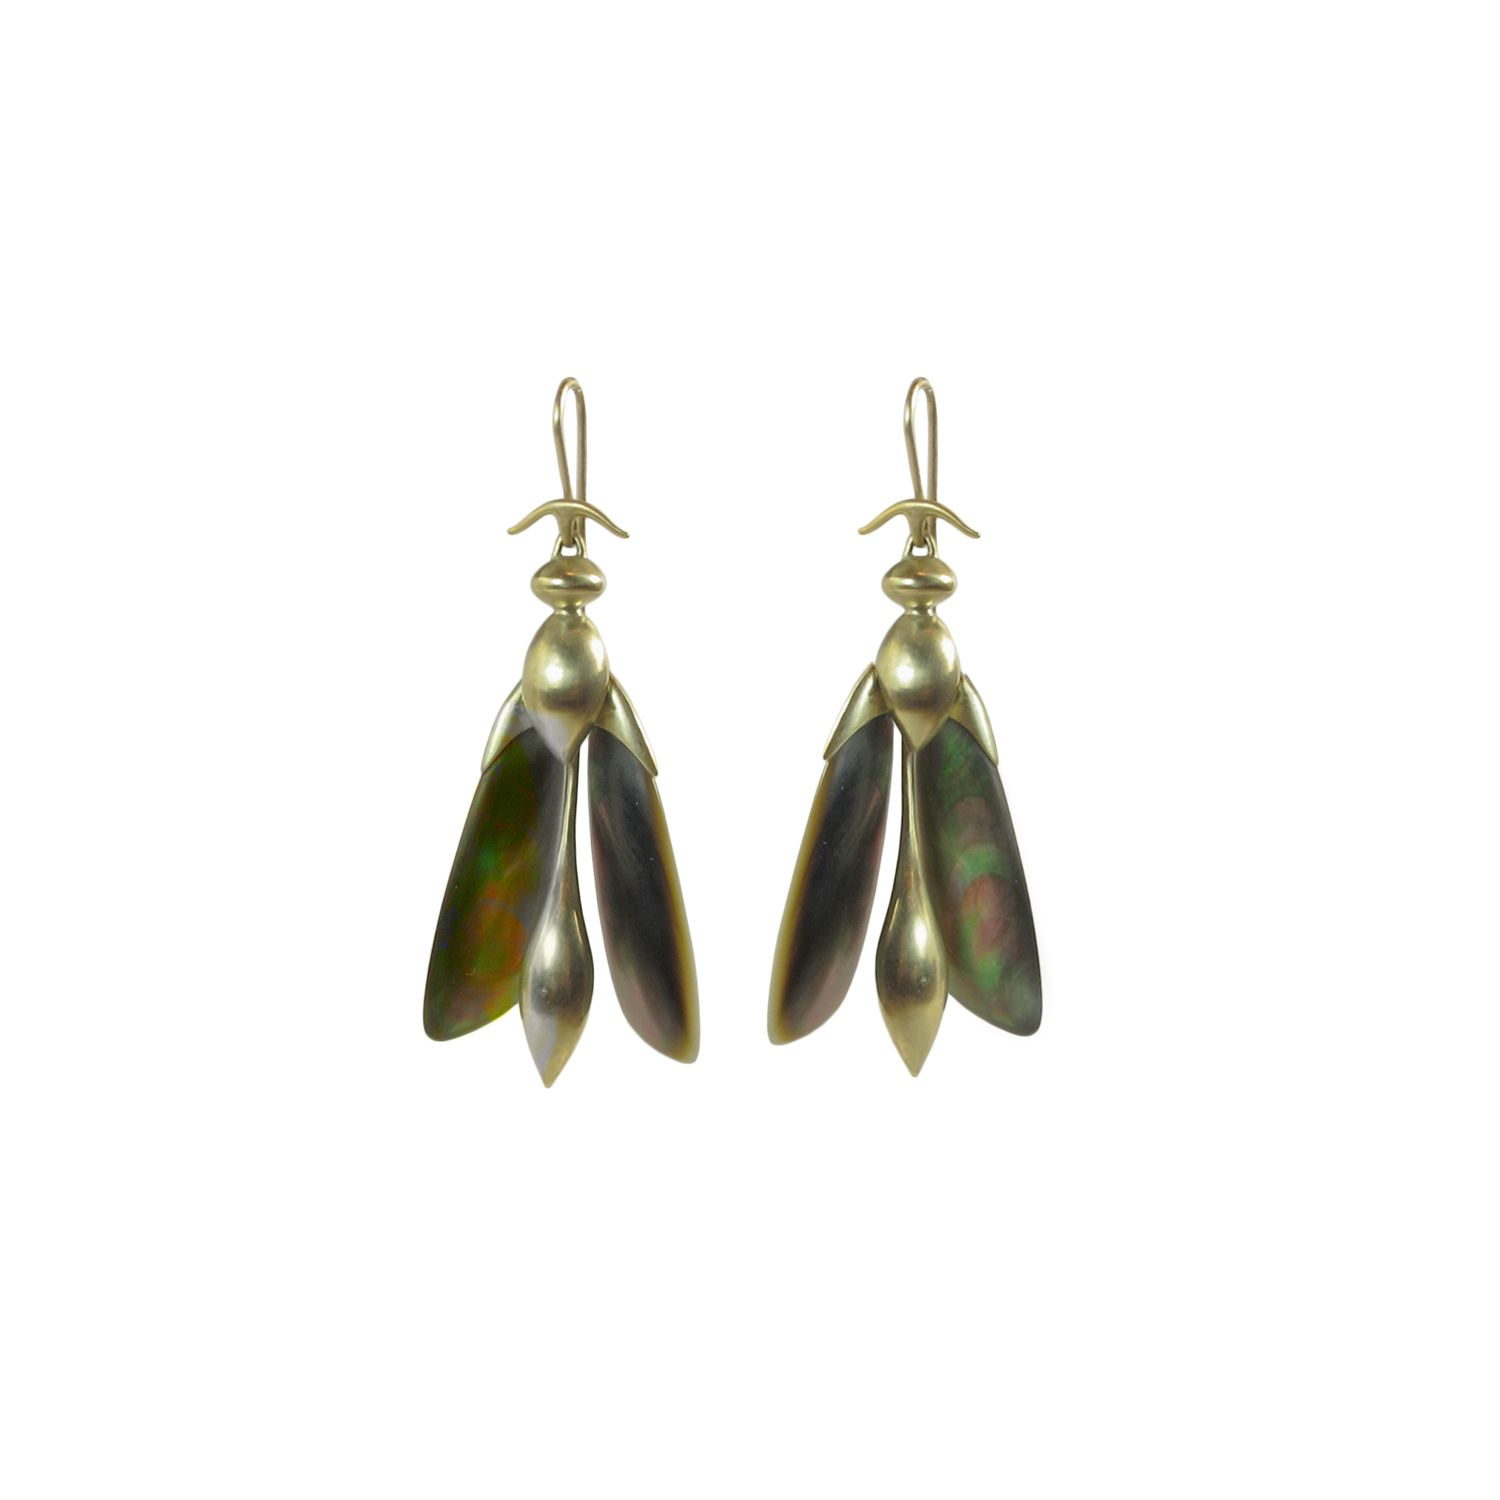 8efc8811f GABRIELLA KISS 10K & BLACK MOTHER-OF-PEARL ARTICULATED WASP EARRINGS ...